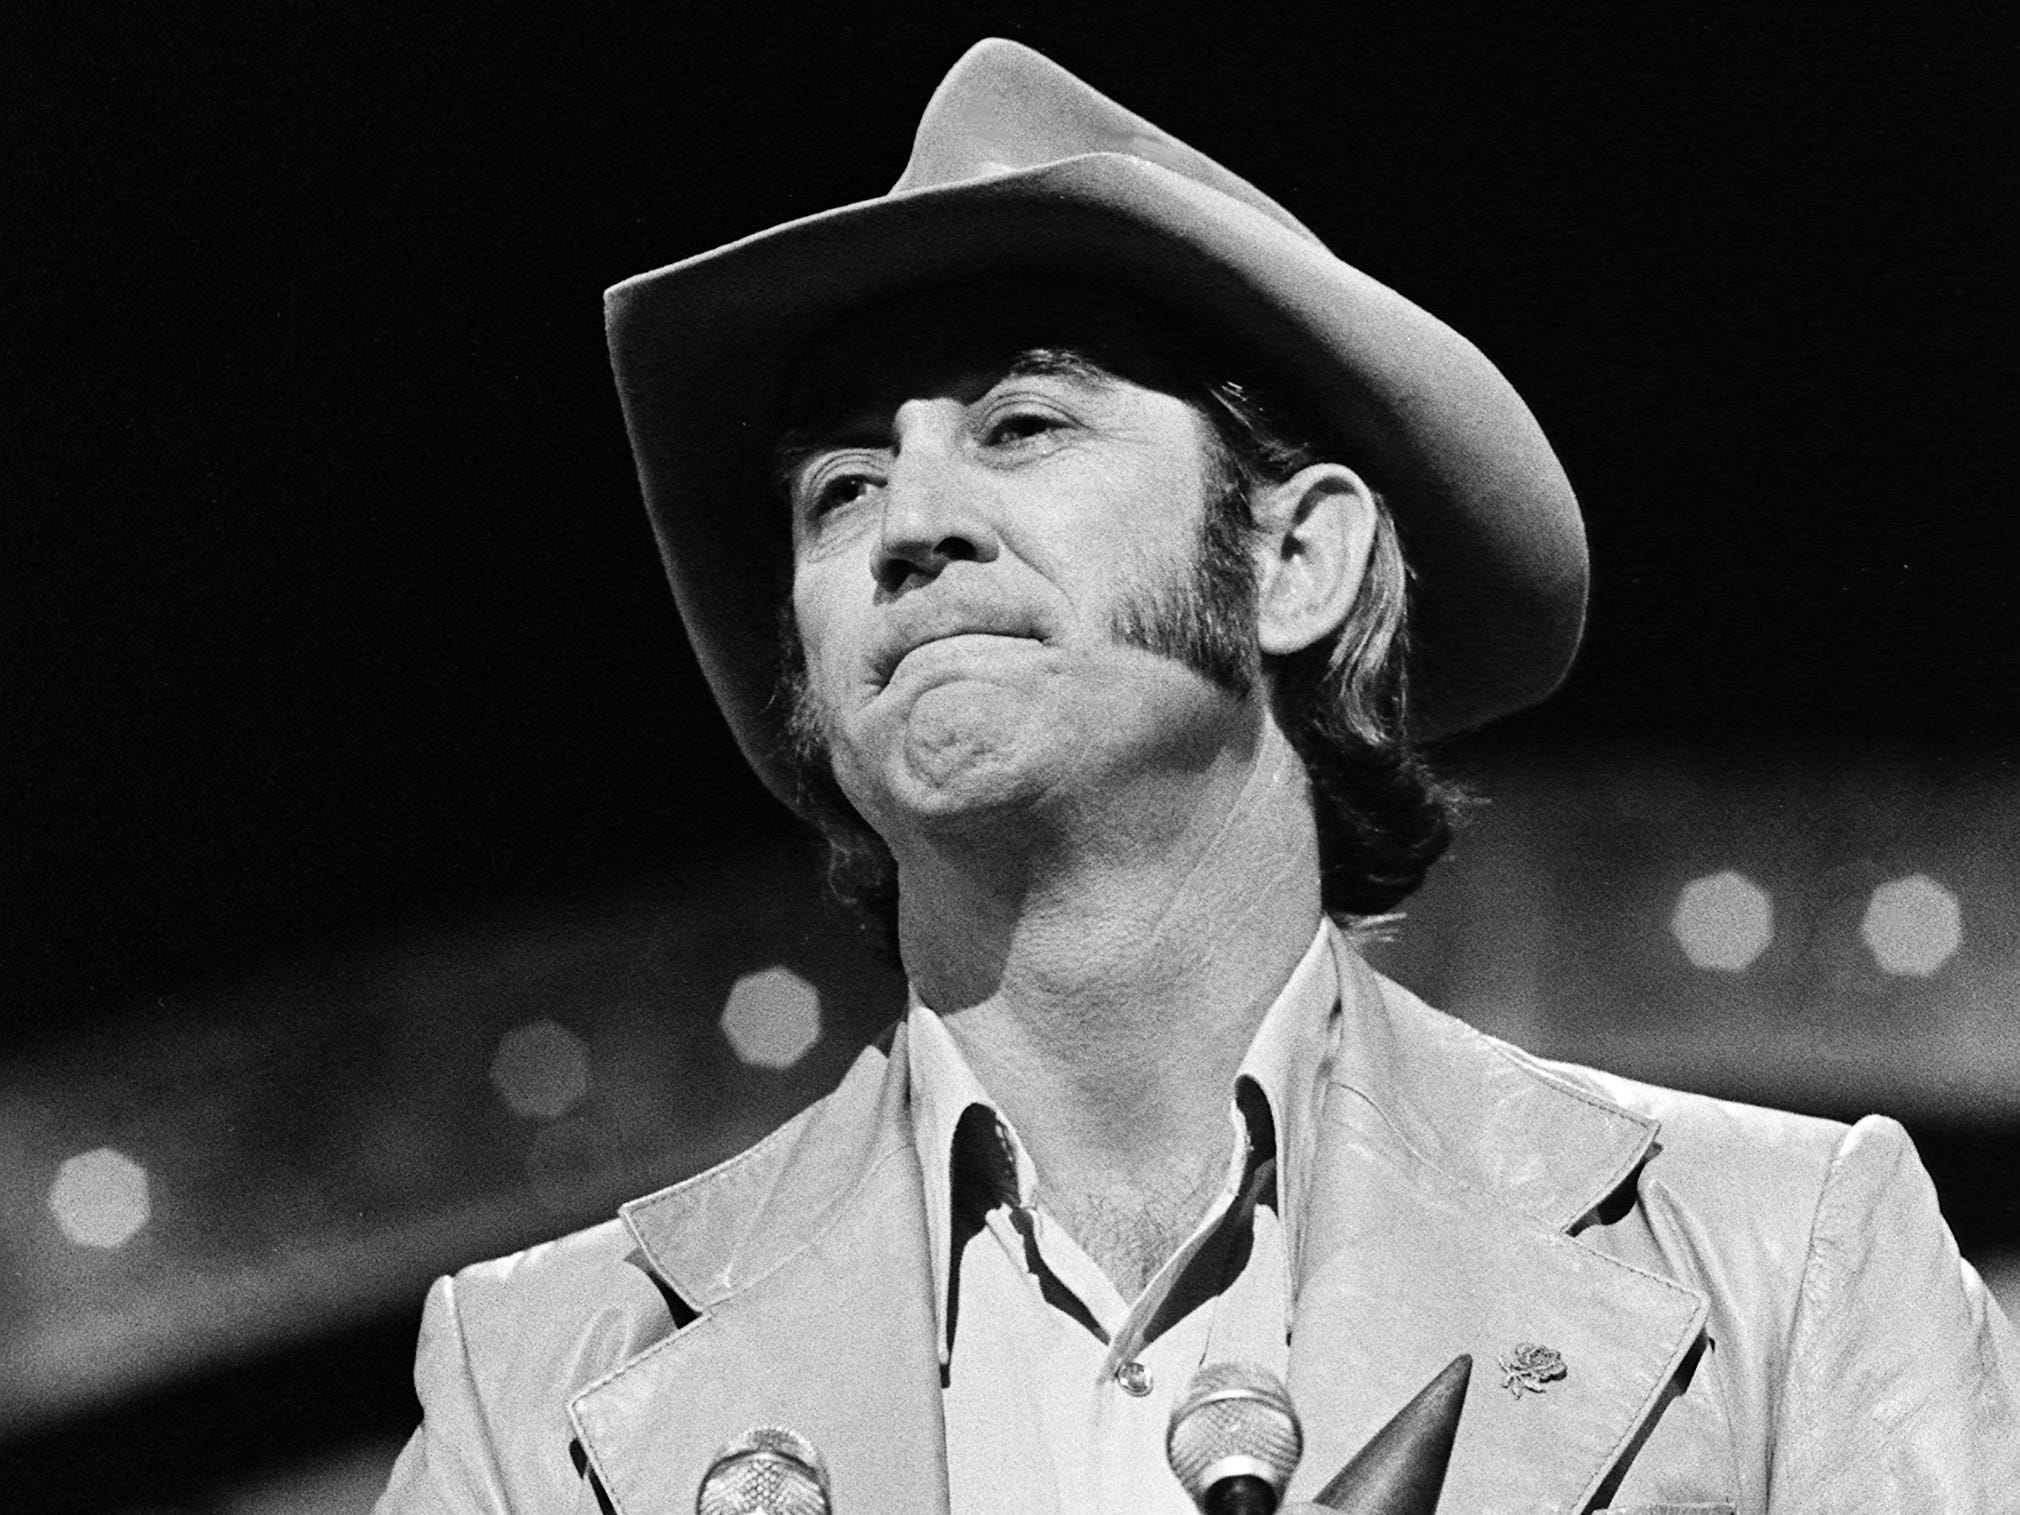 Don Williams accepts the Male Vocalist of the Year award during the 12th annual CMA Awards show Oct. 9, 1978.